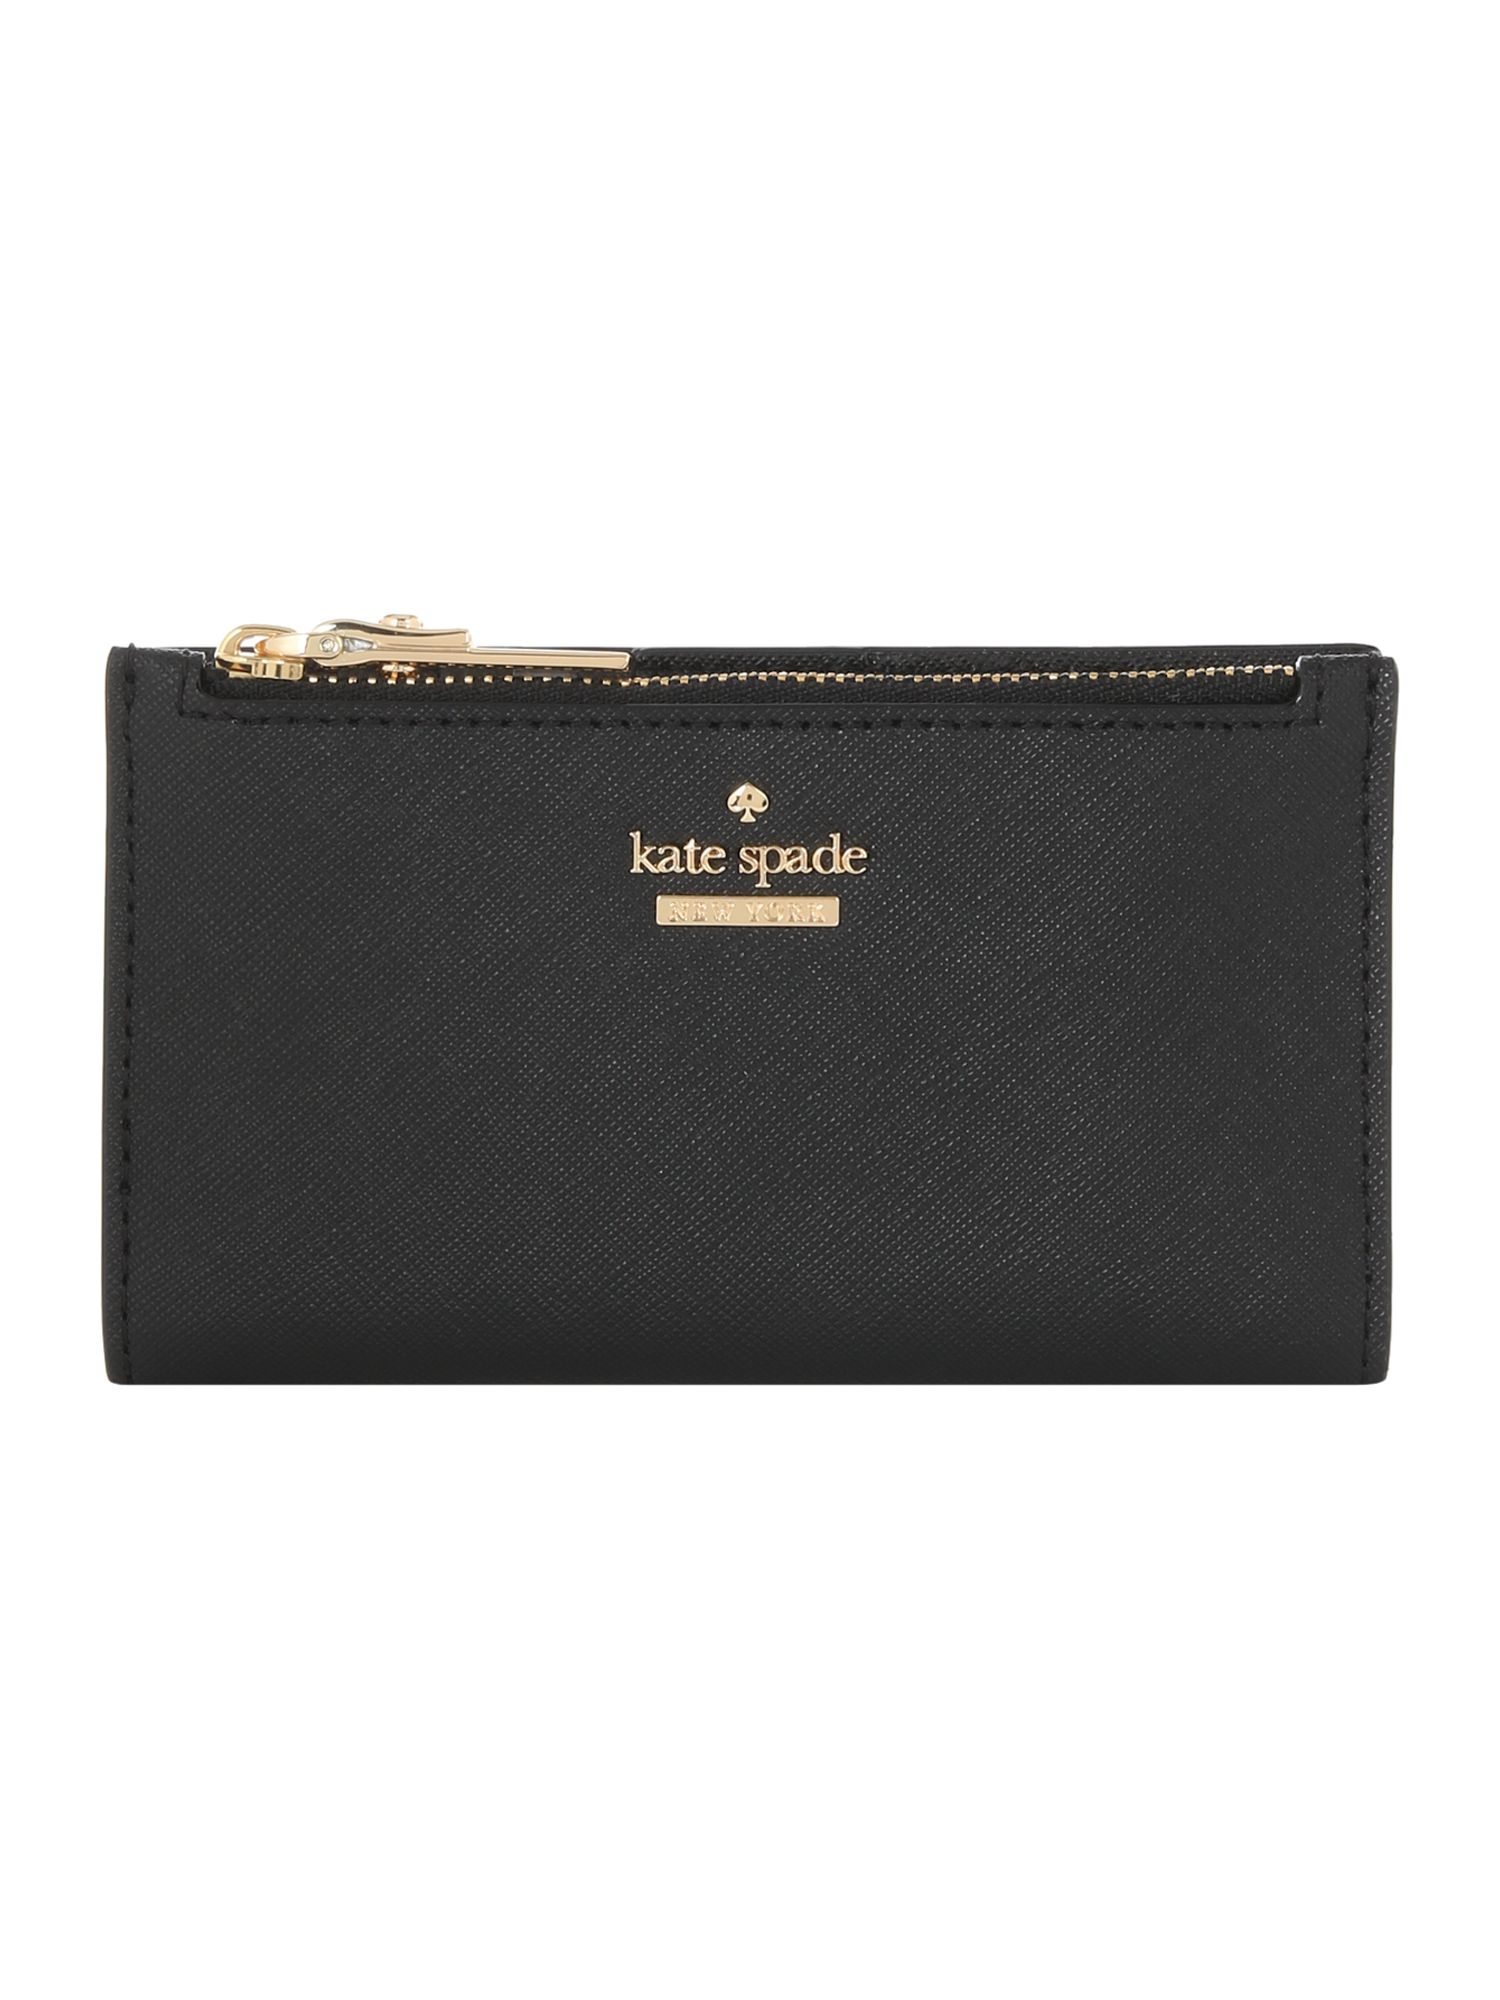 Kate Spade New York Cameron street mikey card case, Black